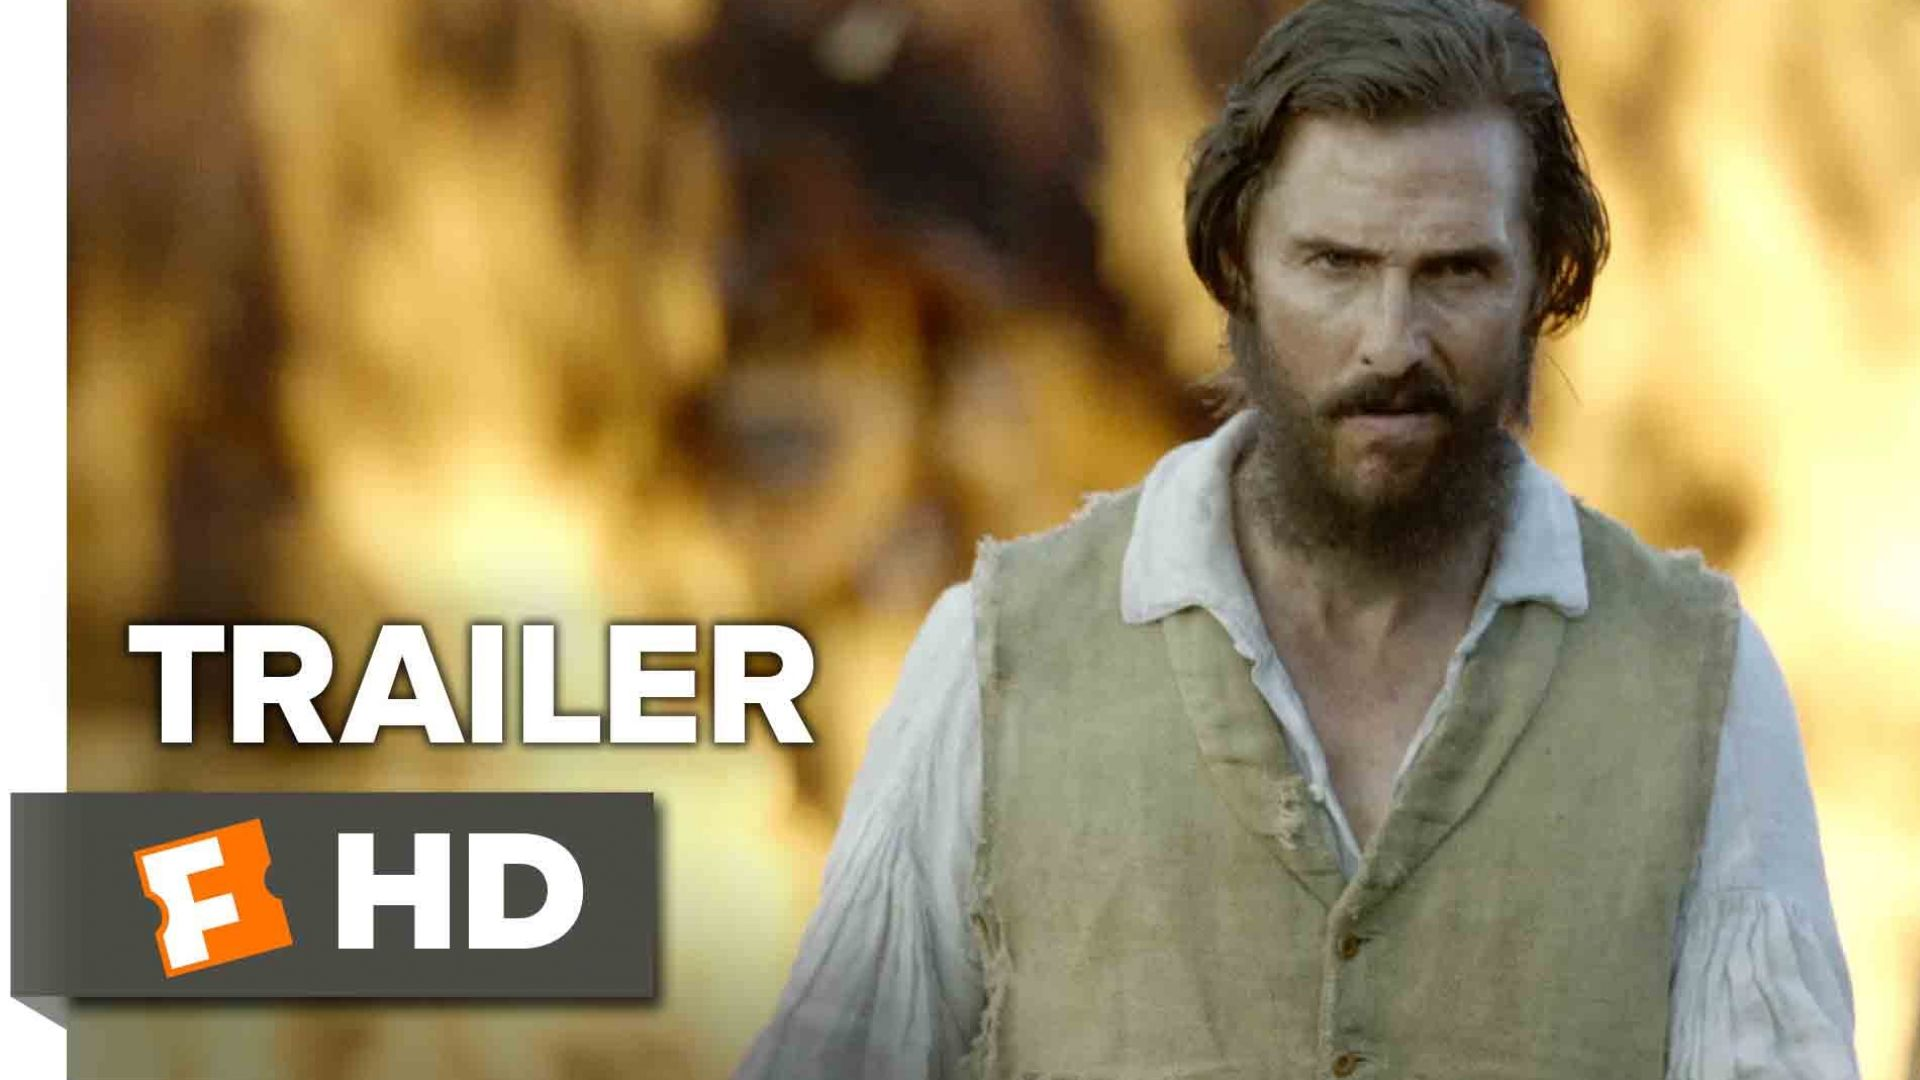 New trailer for Civil War Film 'Free State of Jones' with Ma